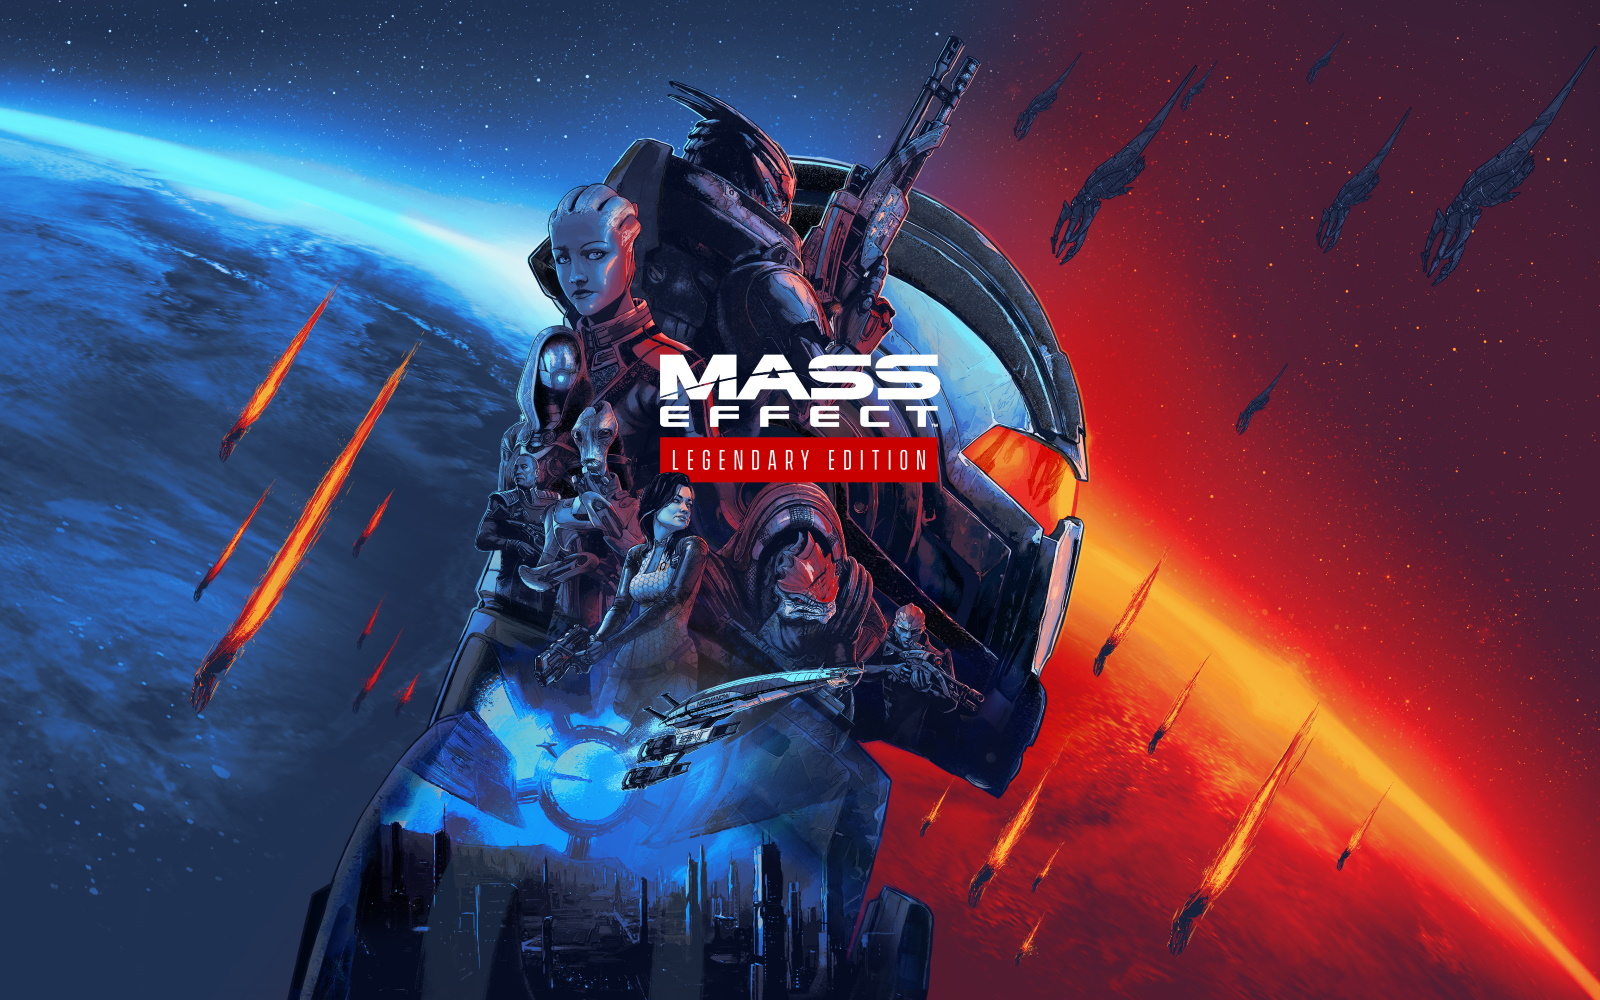 Explore Mass Effect: Legendary Edition Trilogy On May 14th